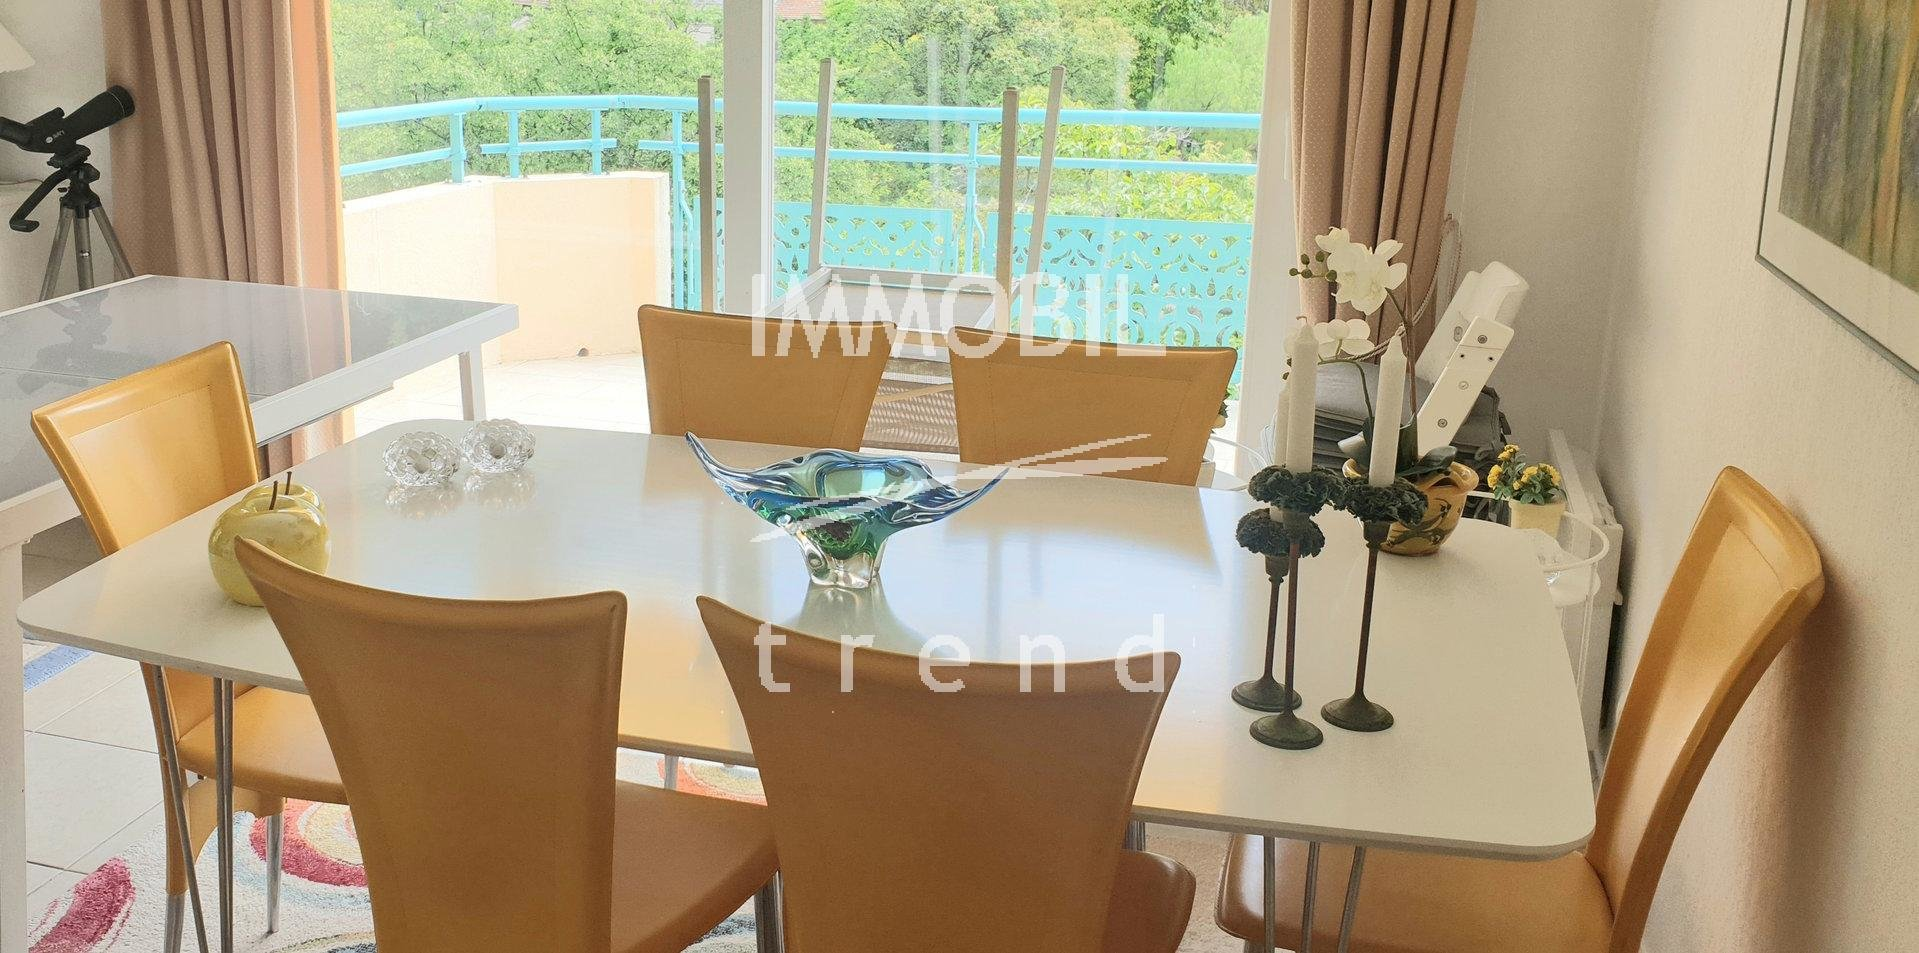 EXCLUSIVITY BEAUTIFUL 3 ROOMS APARTMENT TERRACE GARAGE